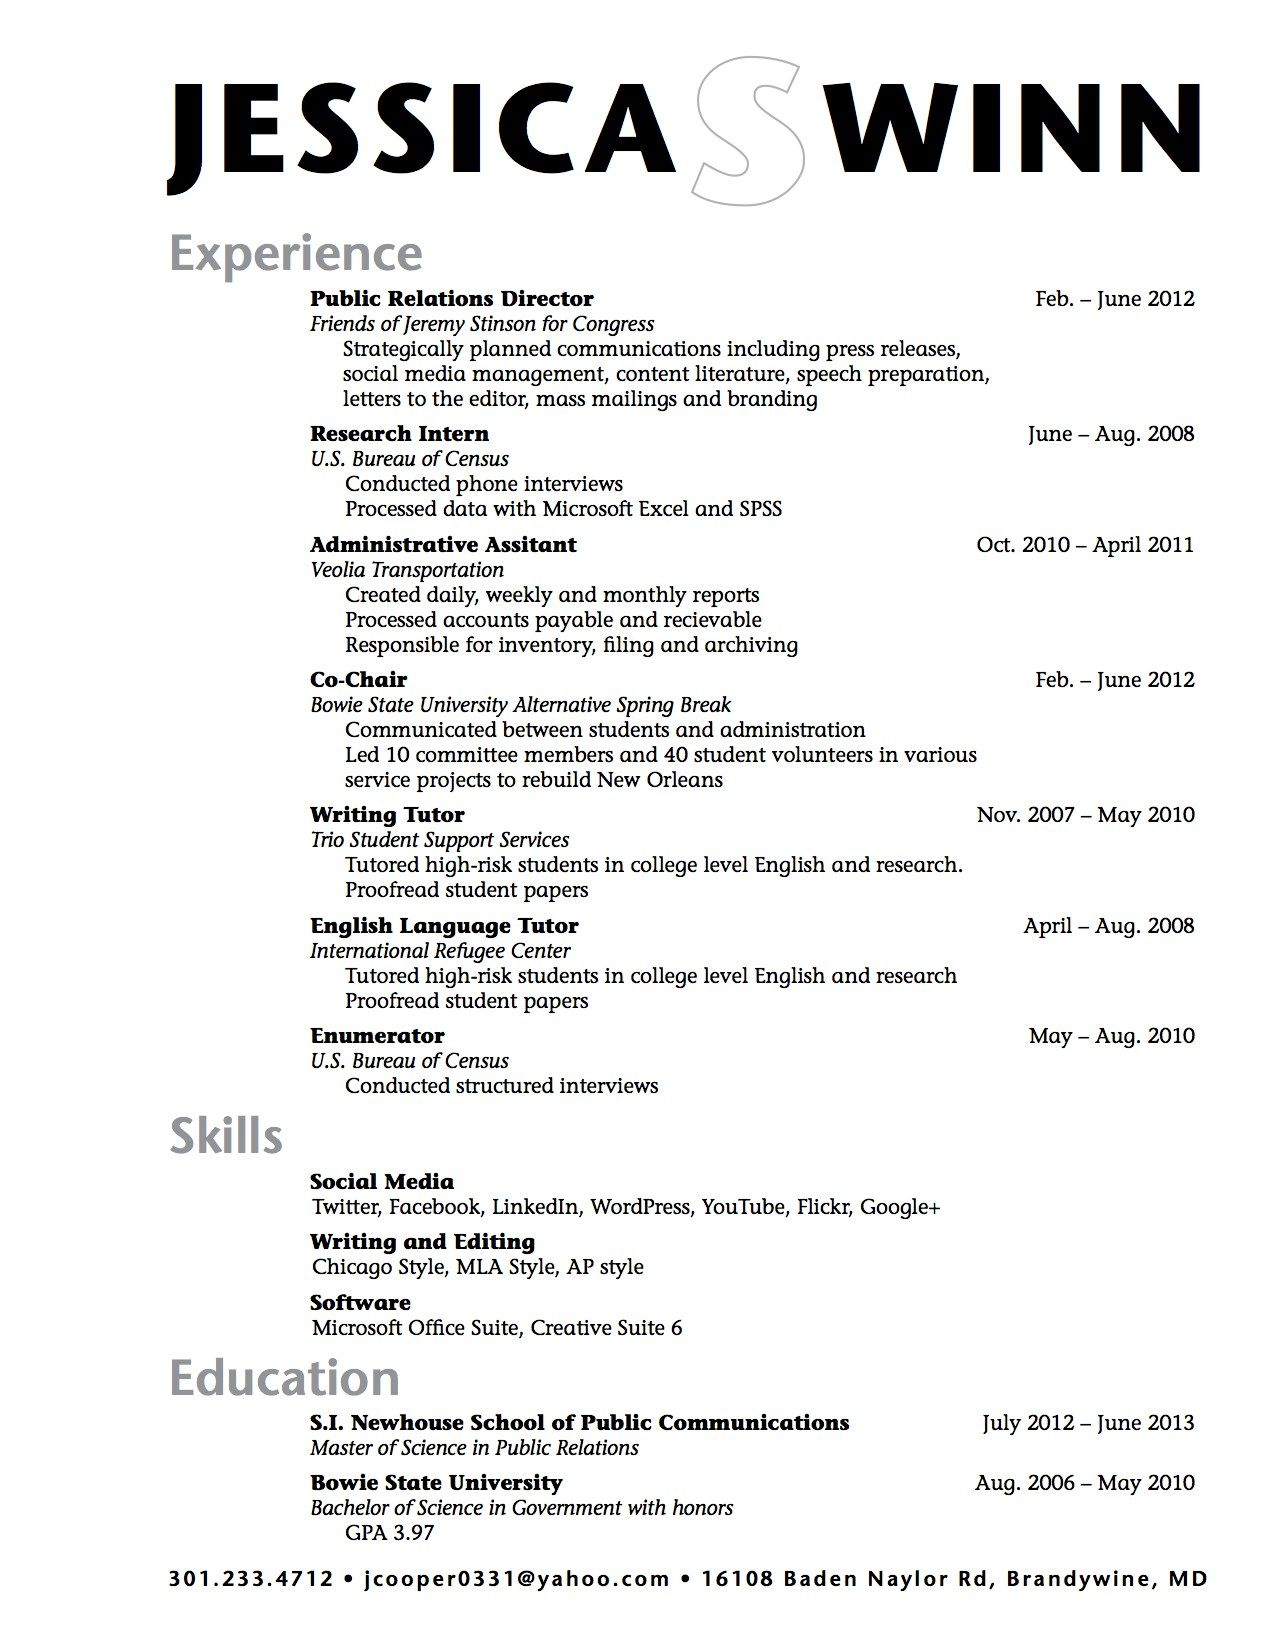 Resume For A Highschool Student Sample High School Student Resume Example  Resume  Pinterest